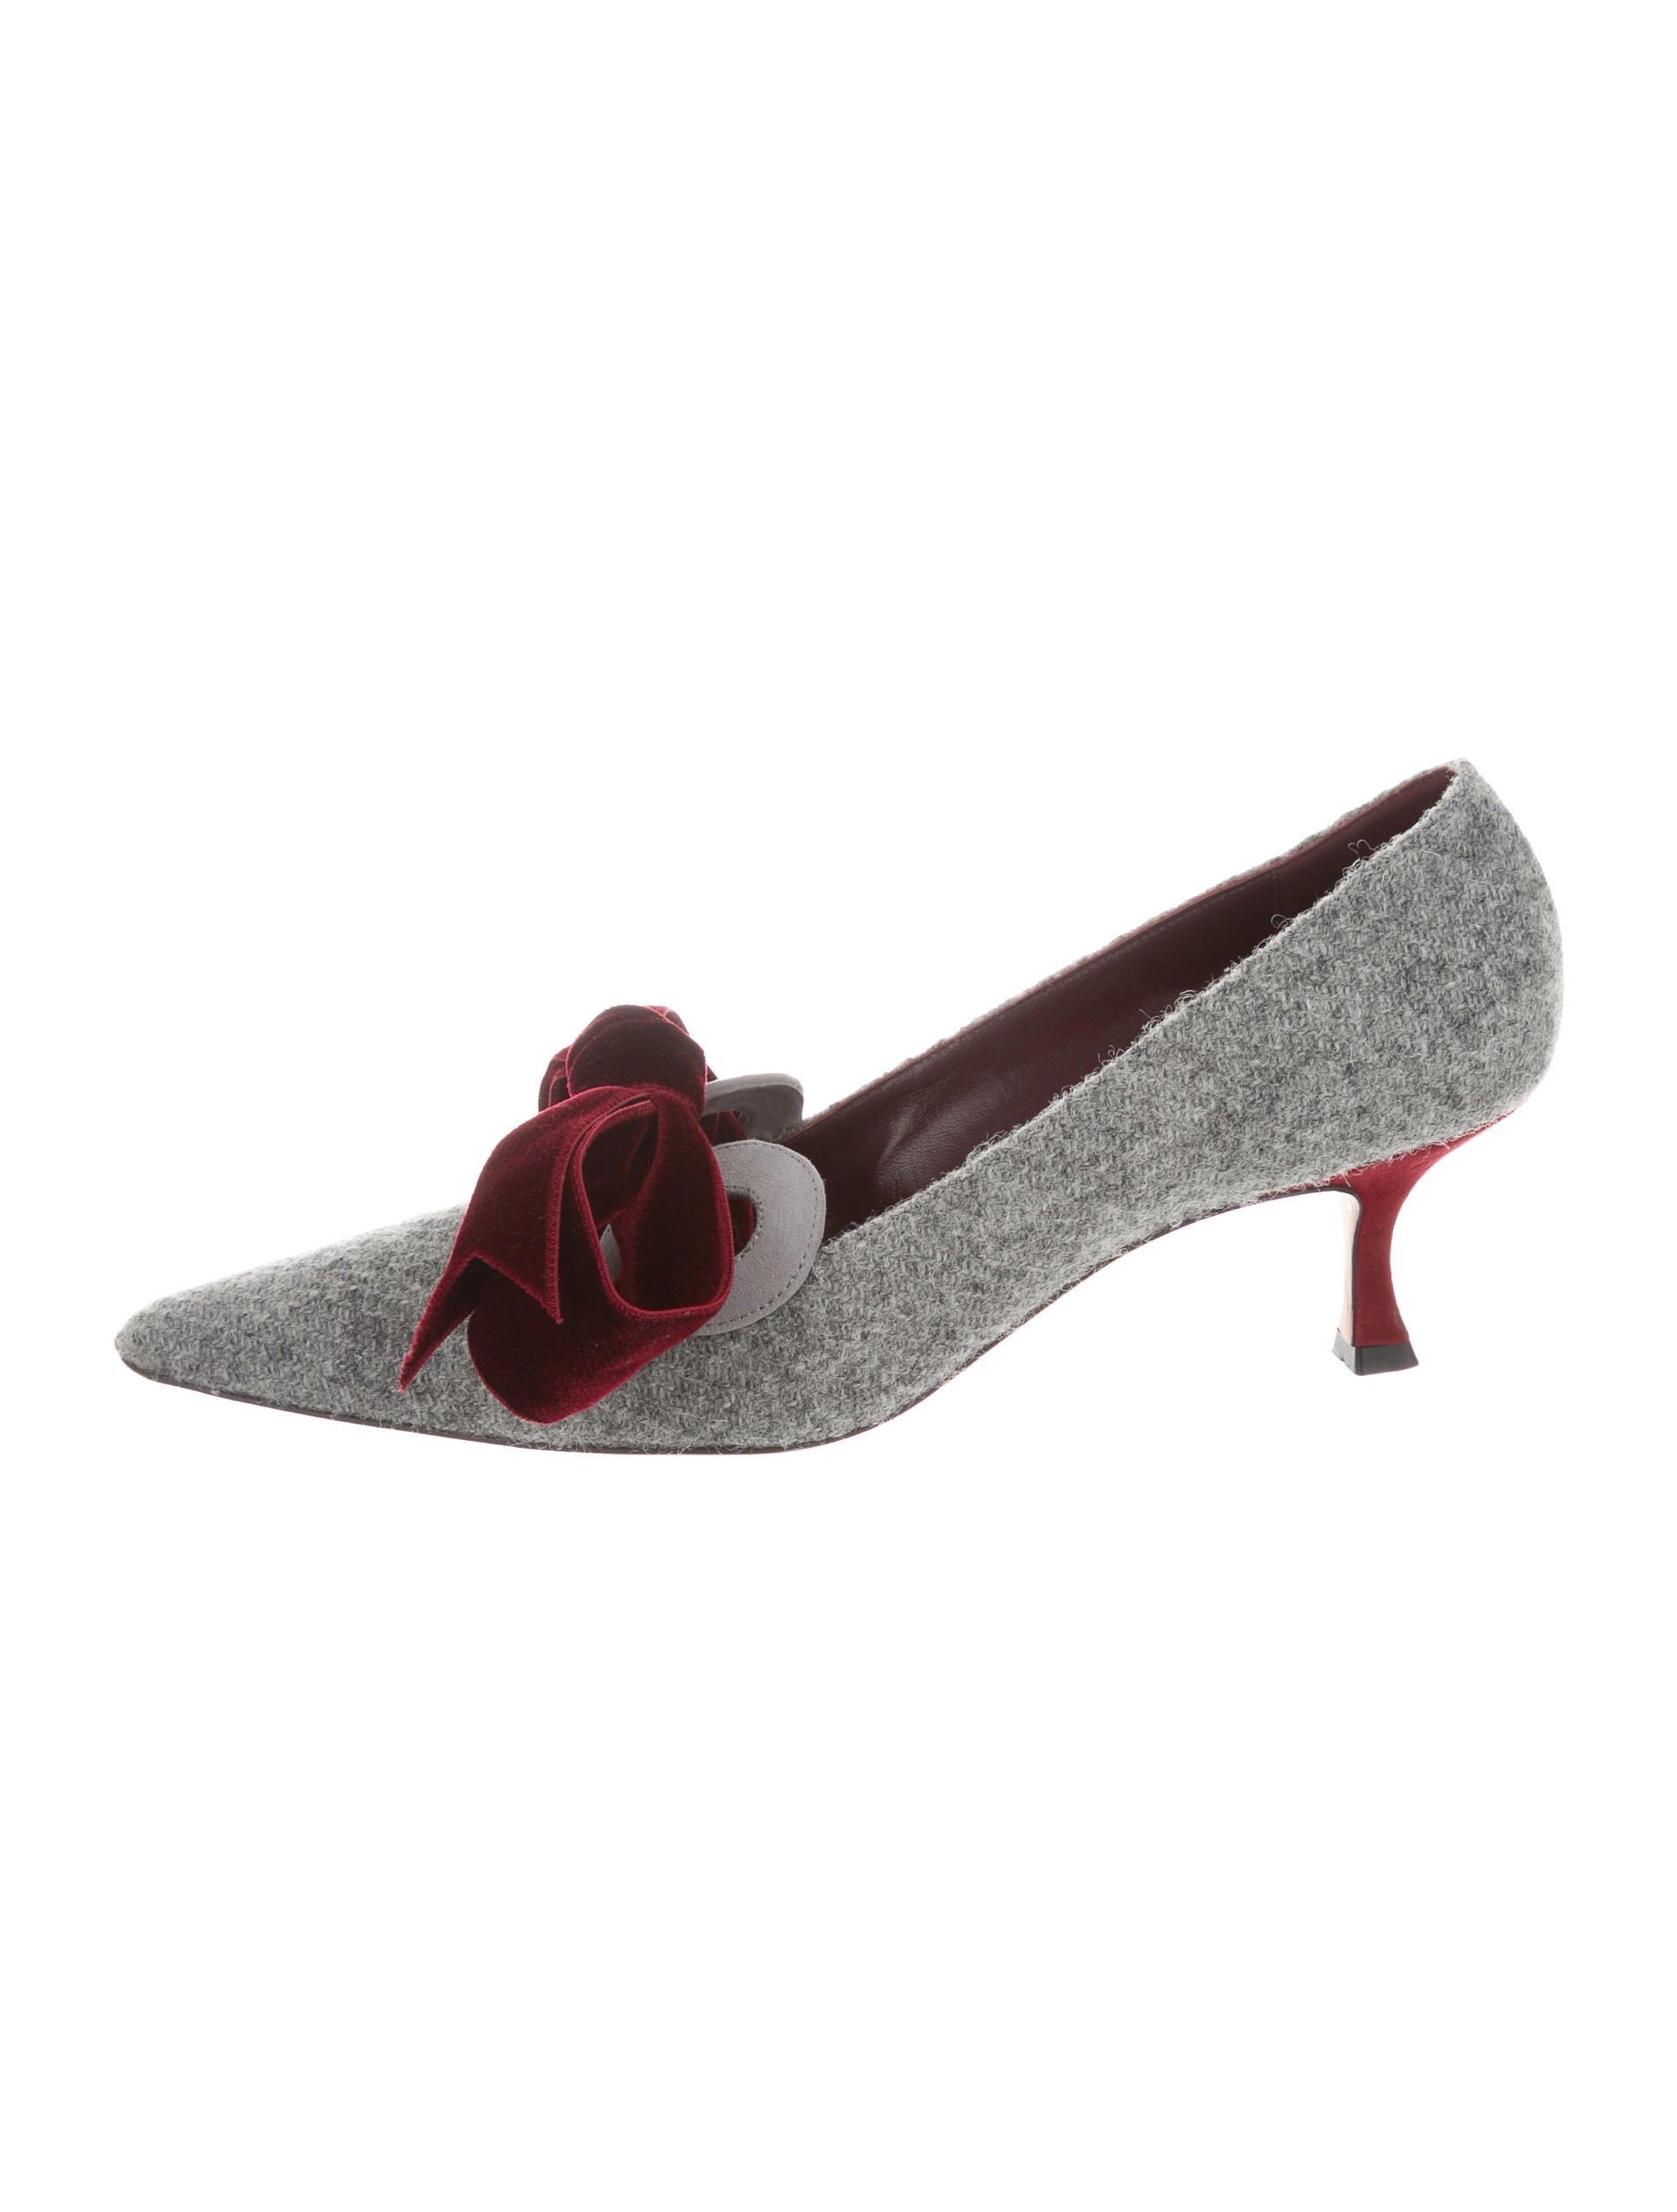 Manolo Blahnik Woven Bow-Accented Pumps outlet finishline outlet locations cheap online for sale official site 4EZKjZH